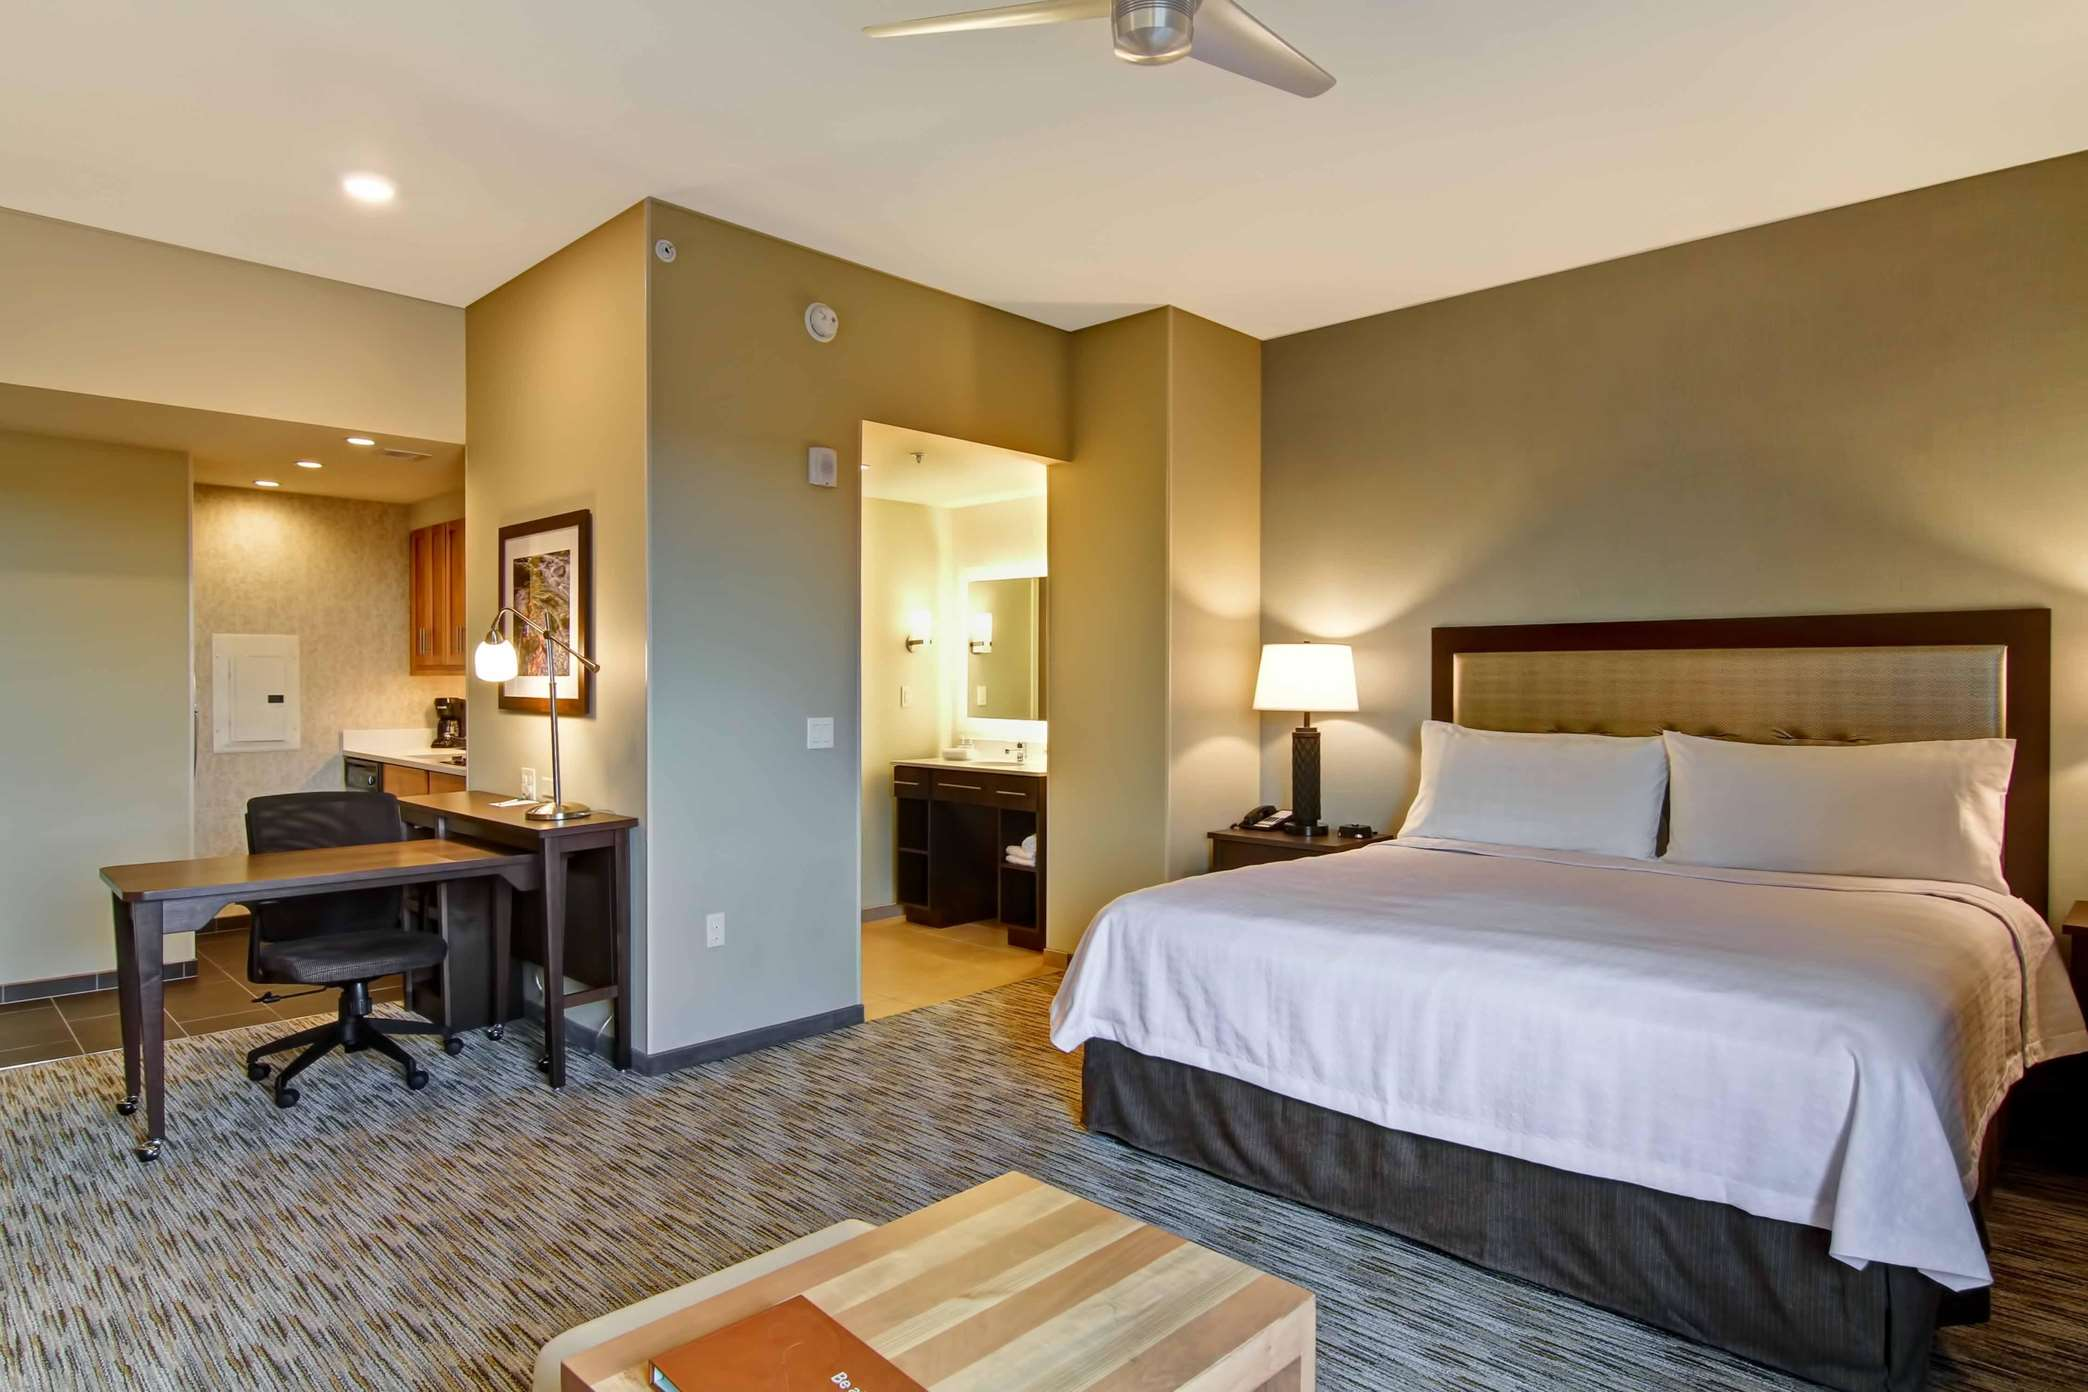 Homewood Suites by Hilton Seattle-Issaquah image 27